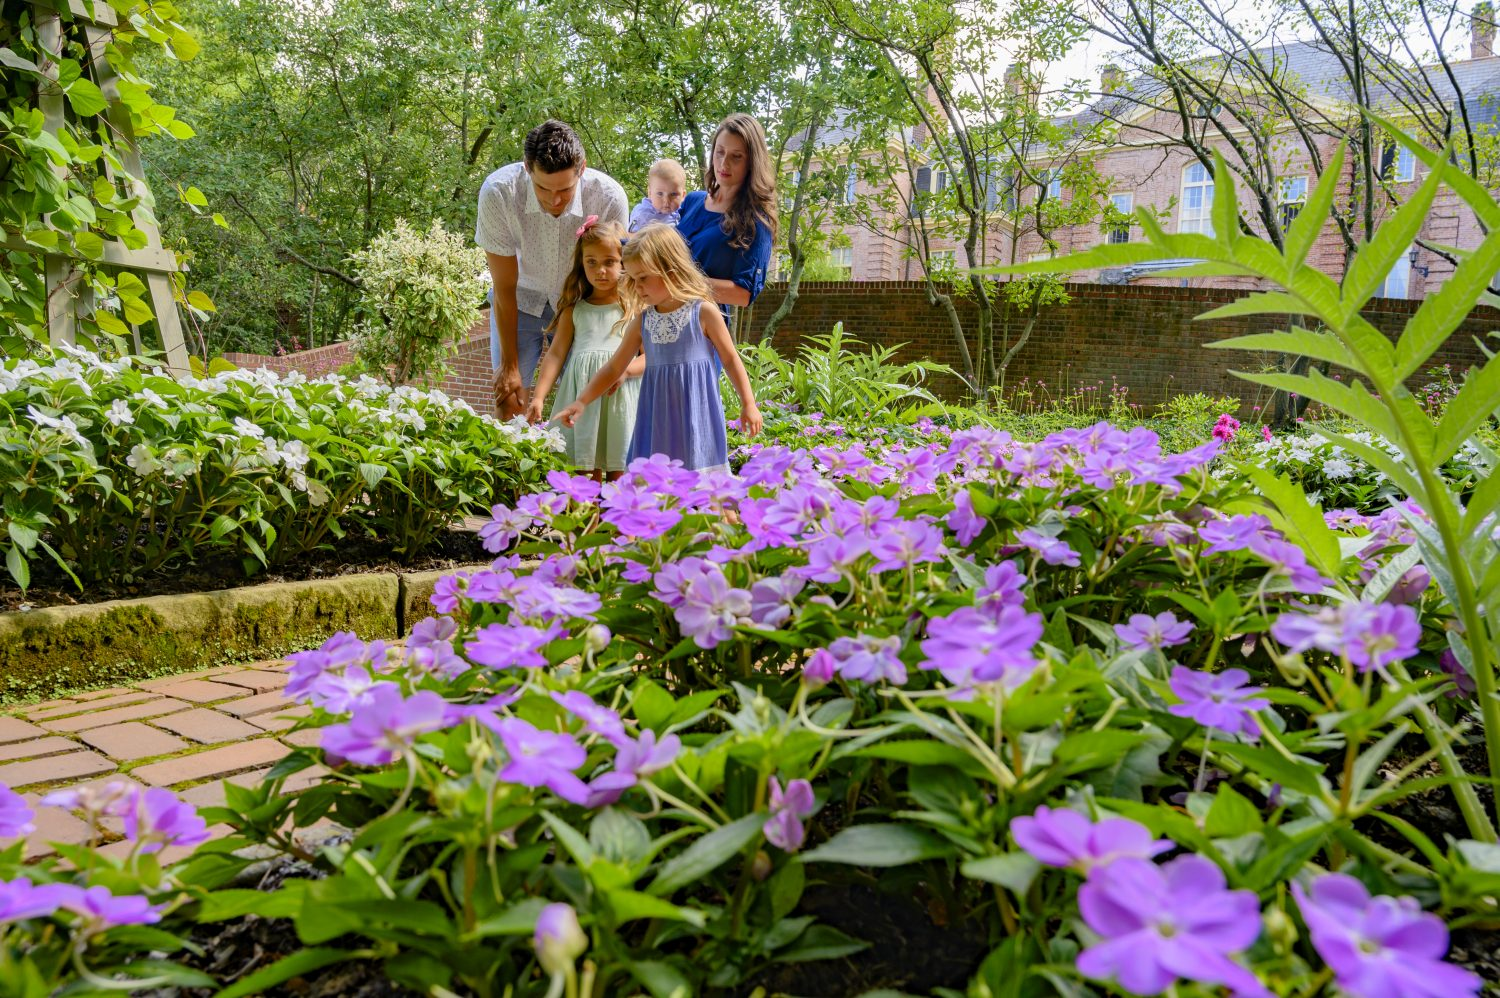 Australian Garden Experience at Kingwood Center Gardens